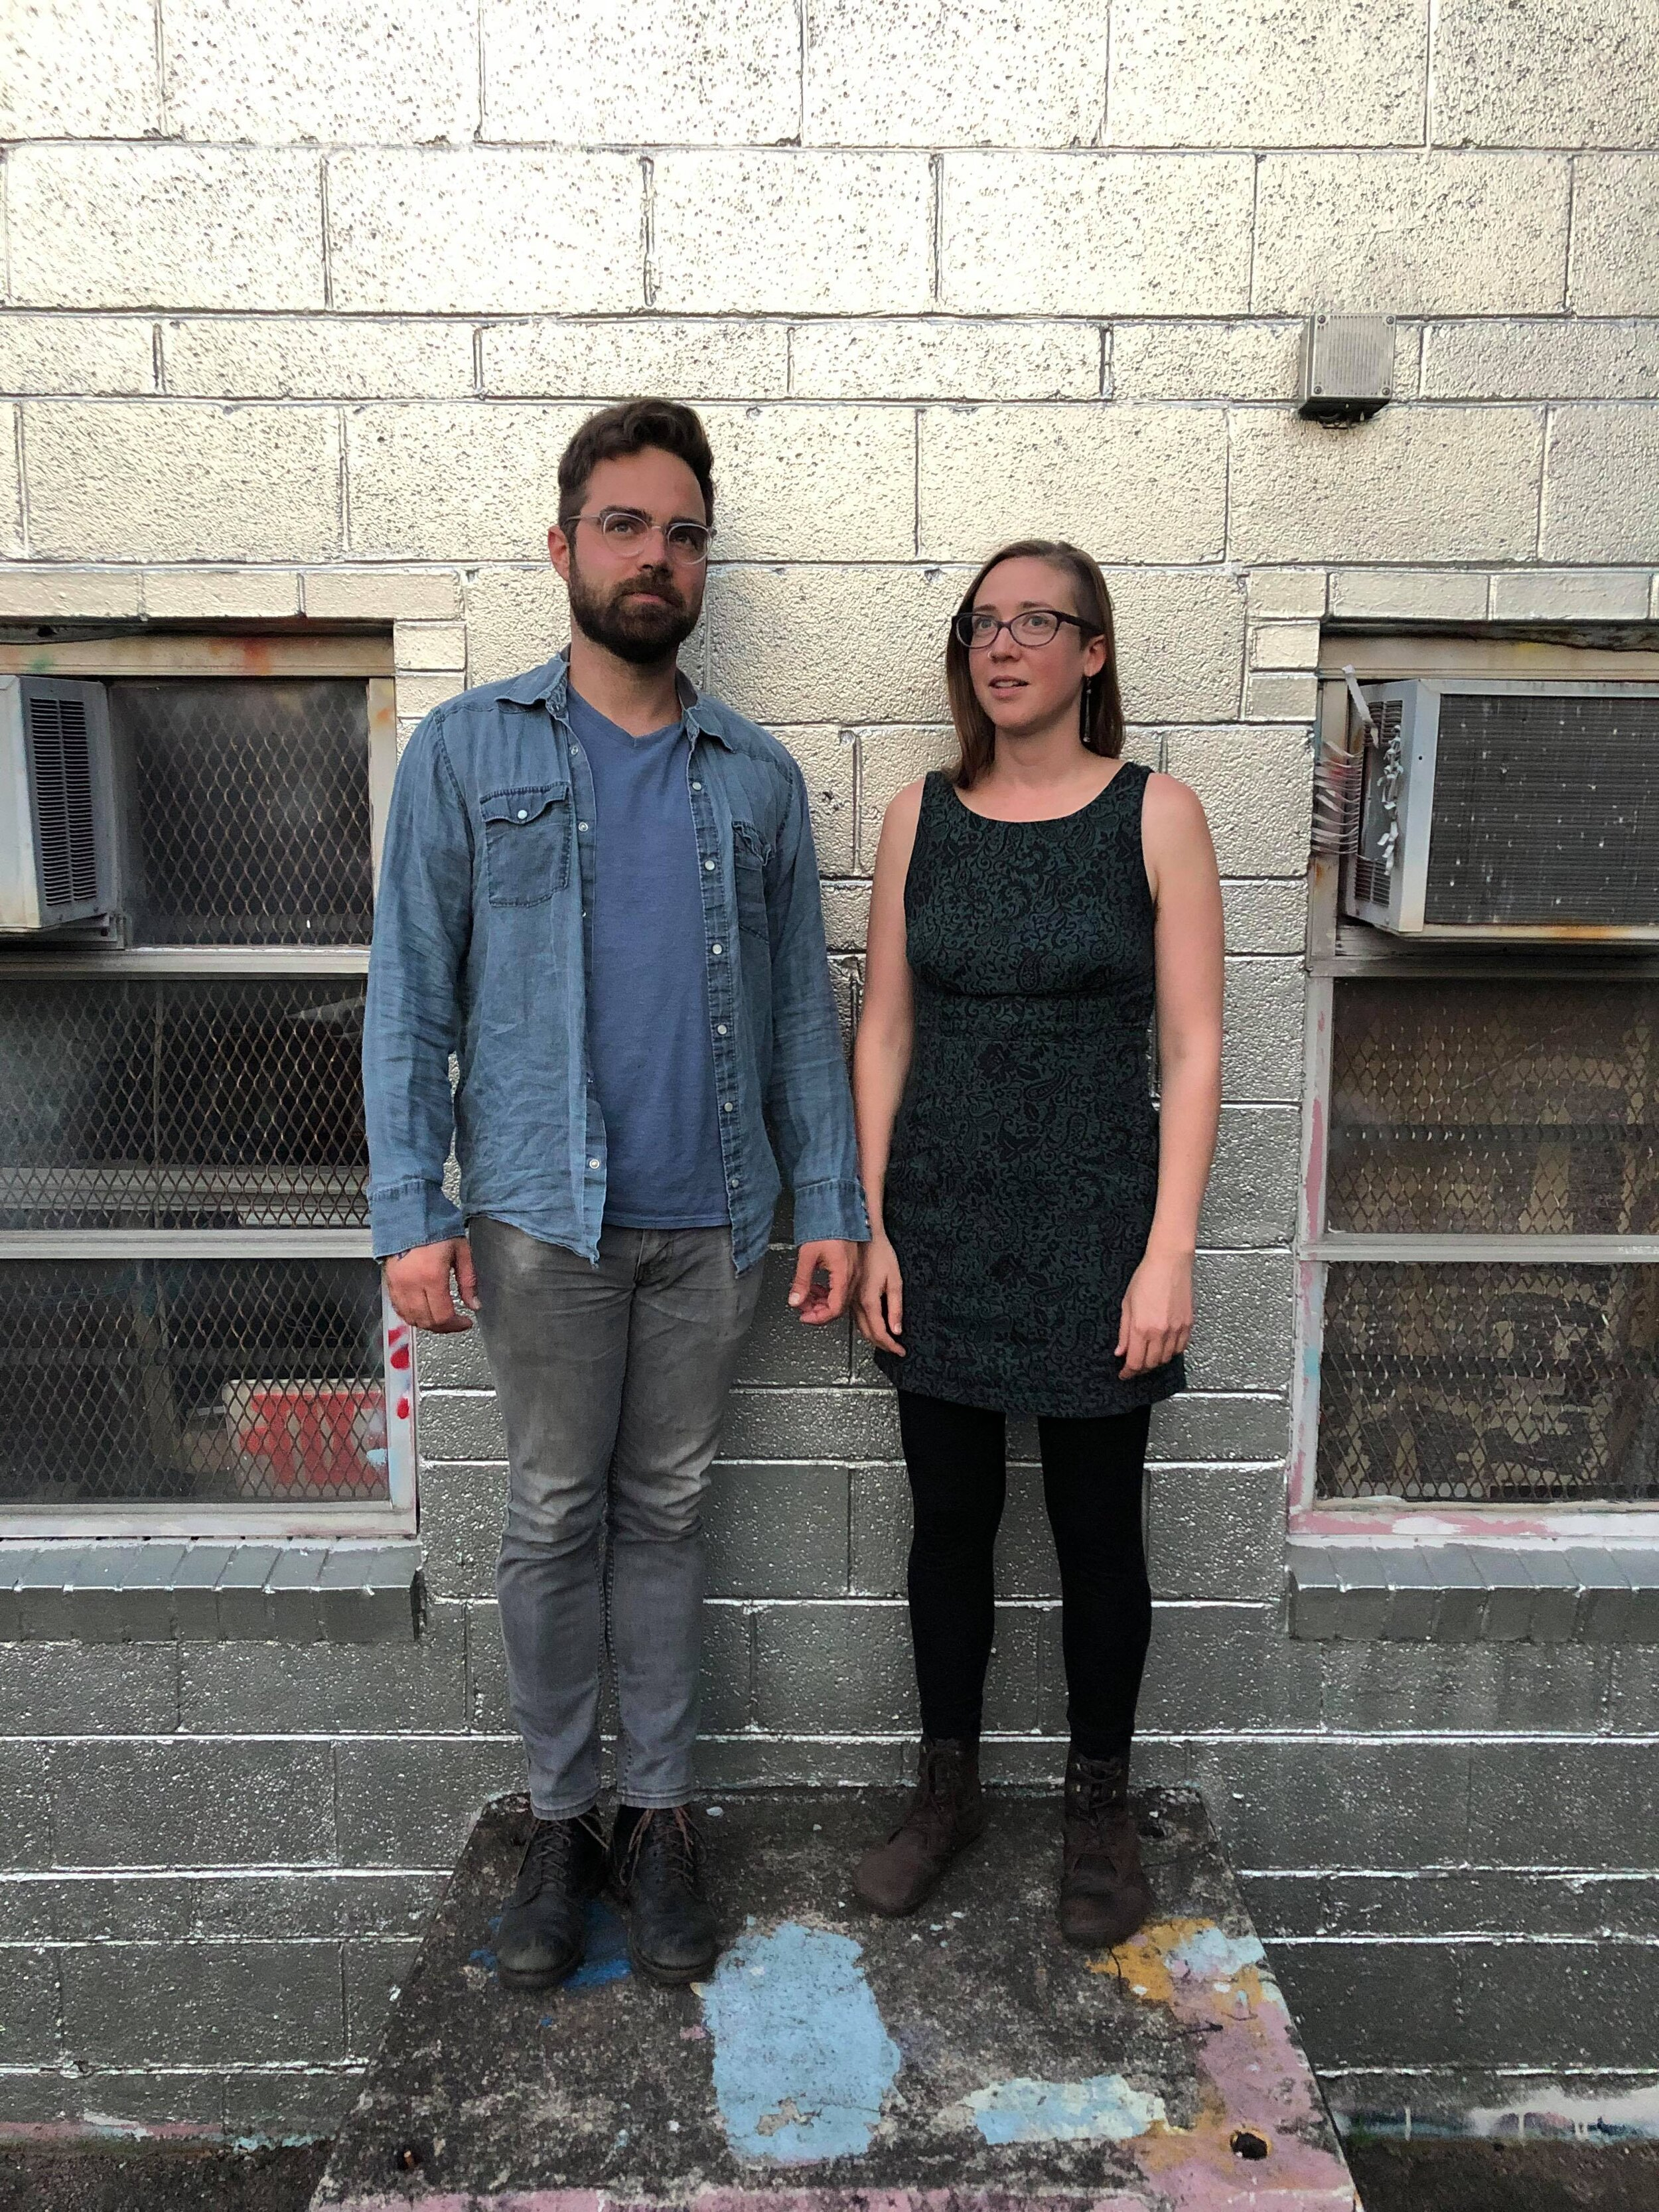 VINESINES - Vinesines is a collaboration between cellist Emmalee Hunnicutt and composer/multi-instrumentalist Ben Hjertmann. Vining together their years of work writing, playing, and experimenting with sound, they create bizarro-beautiful improvised songs.